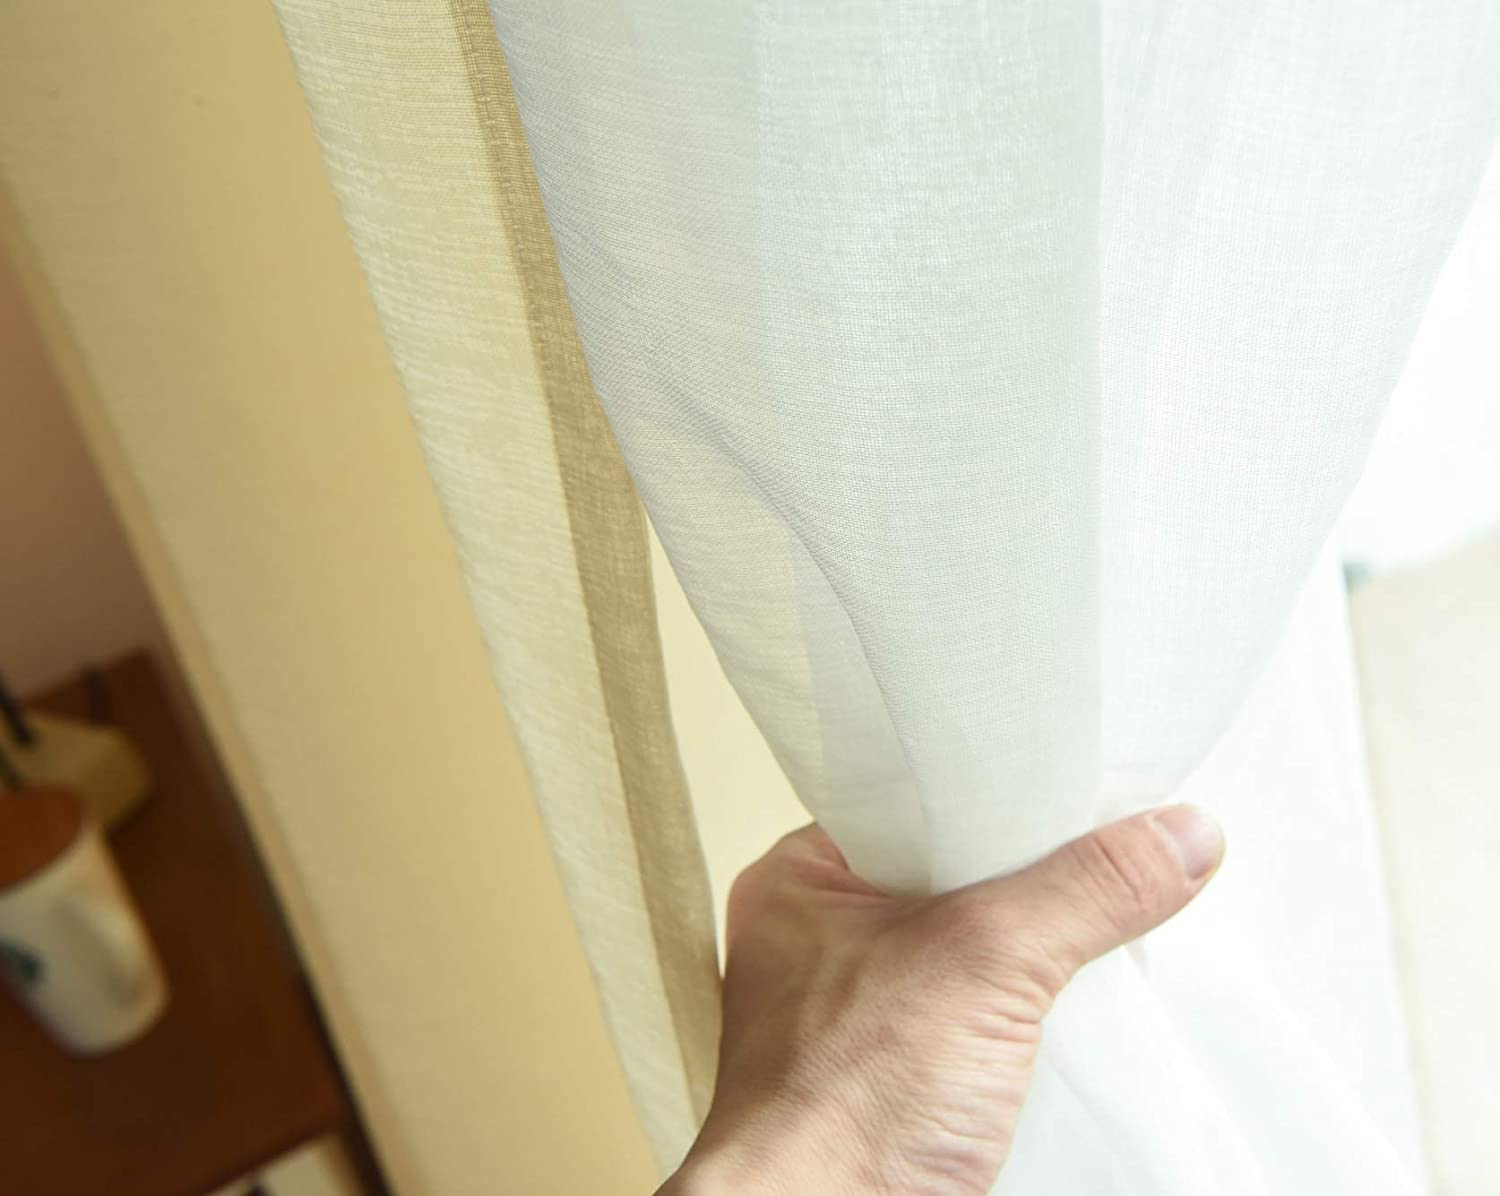 2 Pieces Suntown Home Decorations Grommet Champagne Sheer Curtain for Bedroom Window Panels//Treatment 97 inches Long for Living Room /& Girls Room